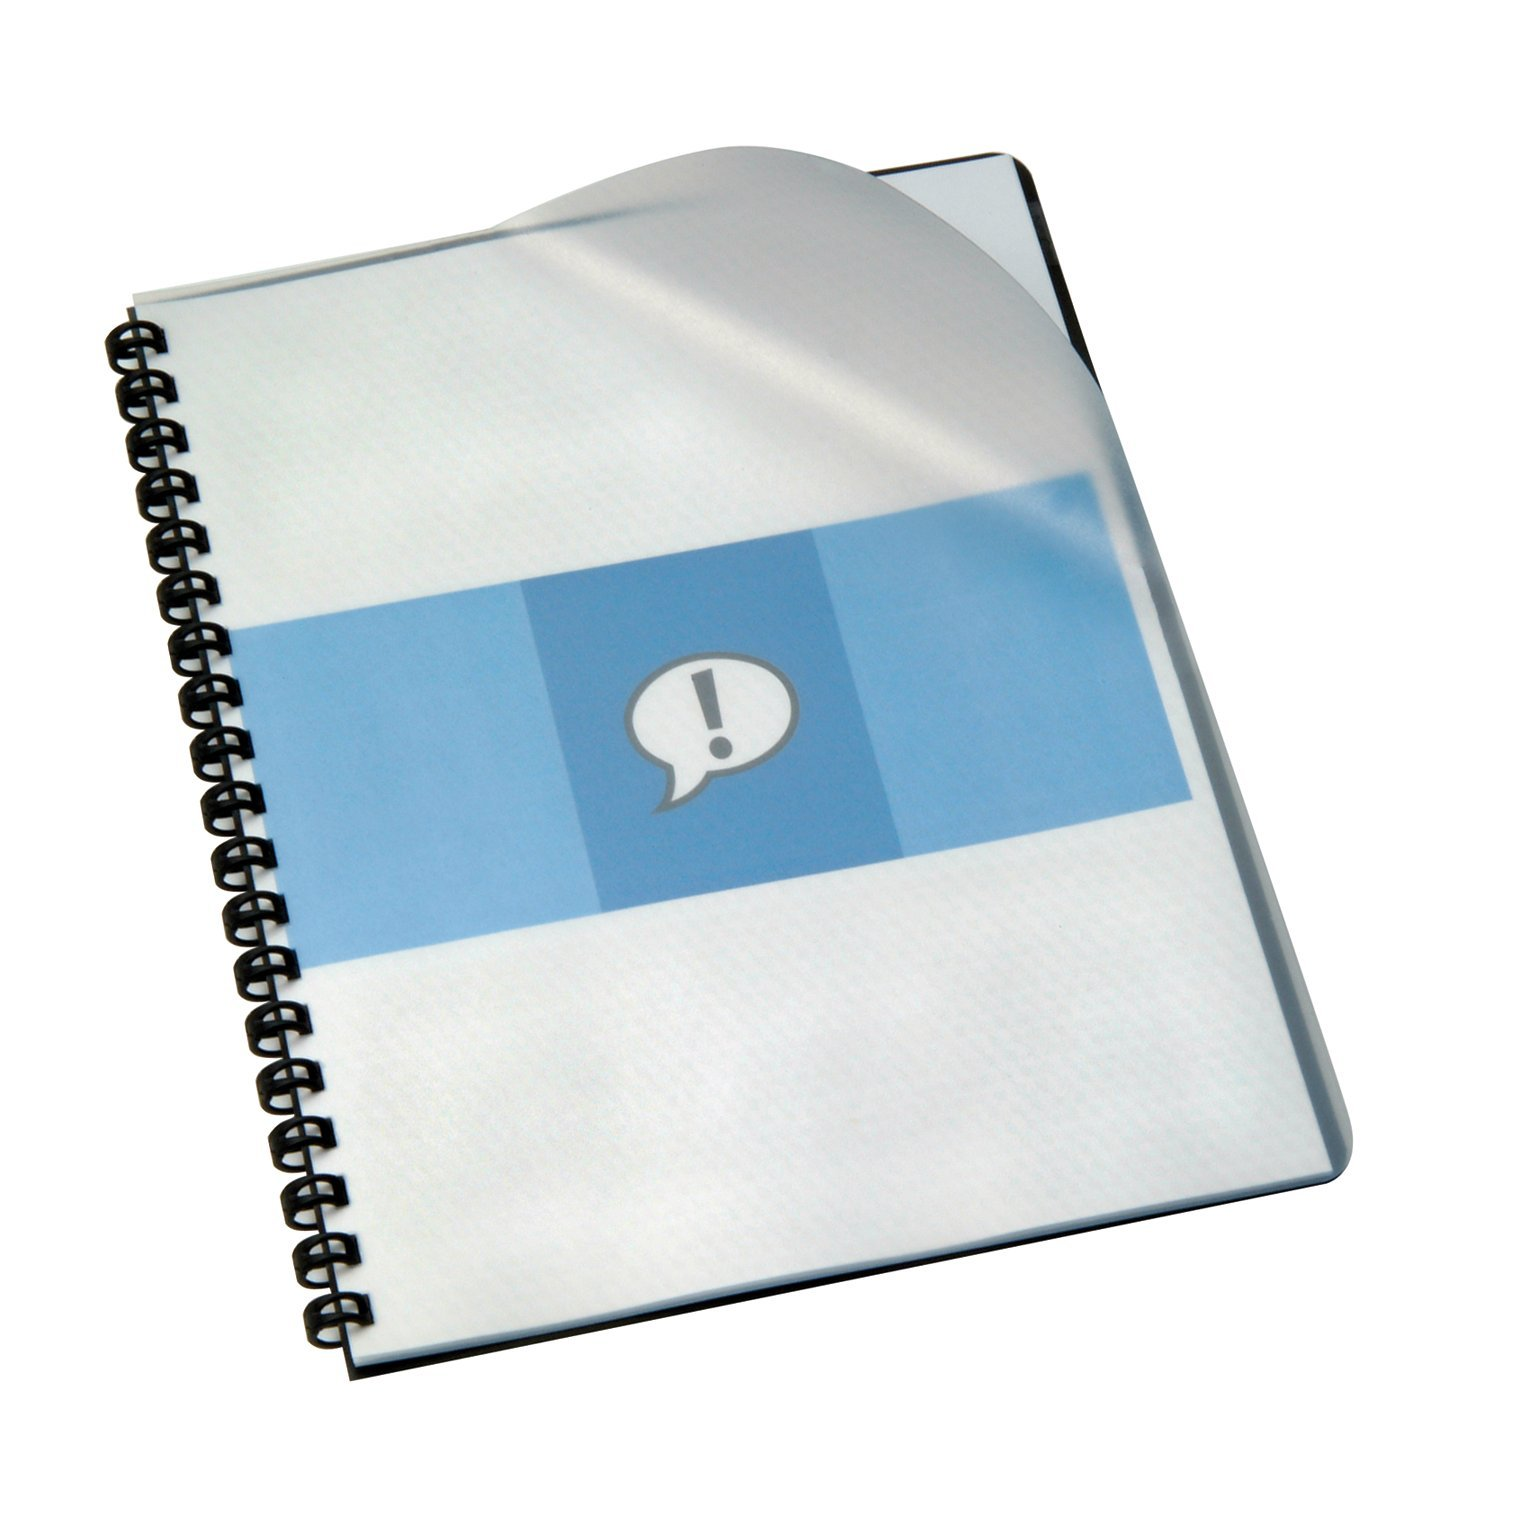 GBC Report / 11 x 8.5'' Presentation Covers, Premium Plus Frost Poly, 14 mil, Clear View, 100/Box (2000919G)